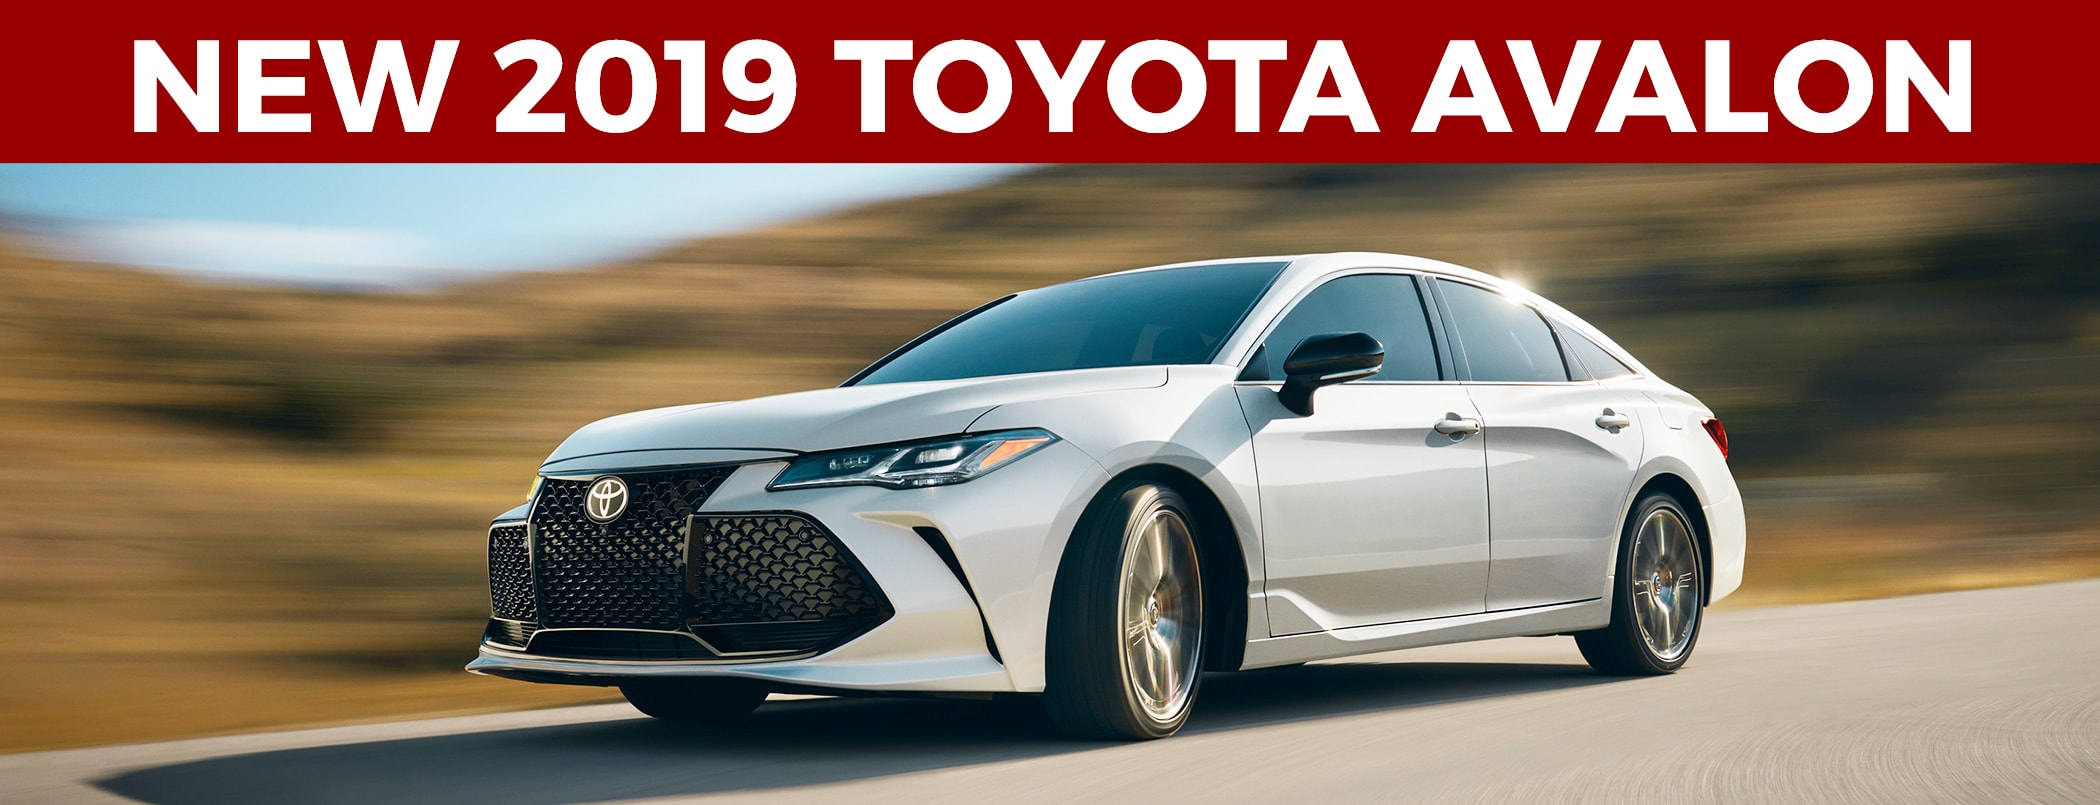 2019 Toyota Avalon Review Murray